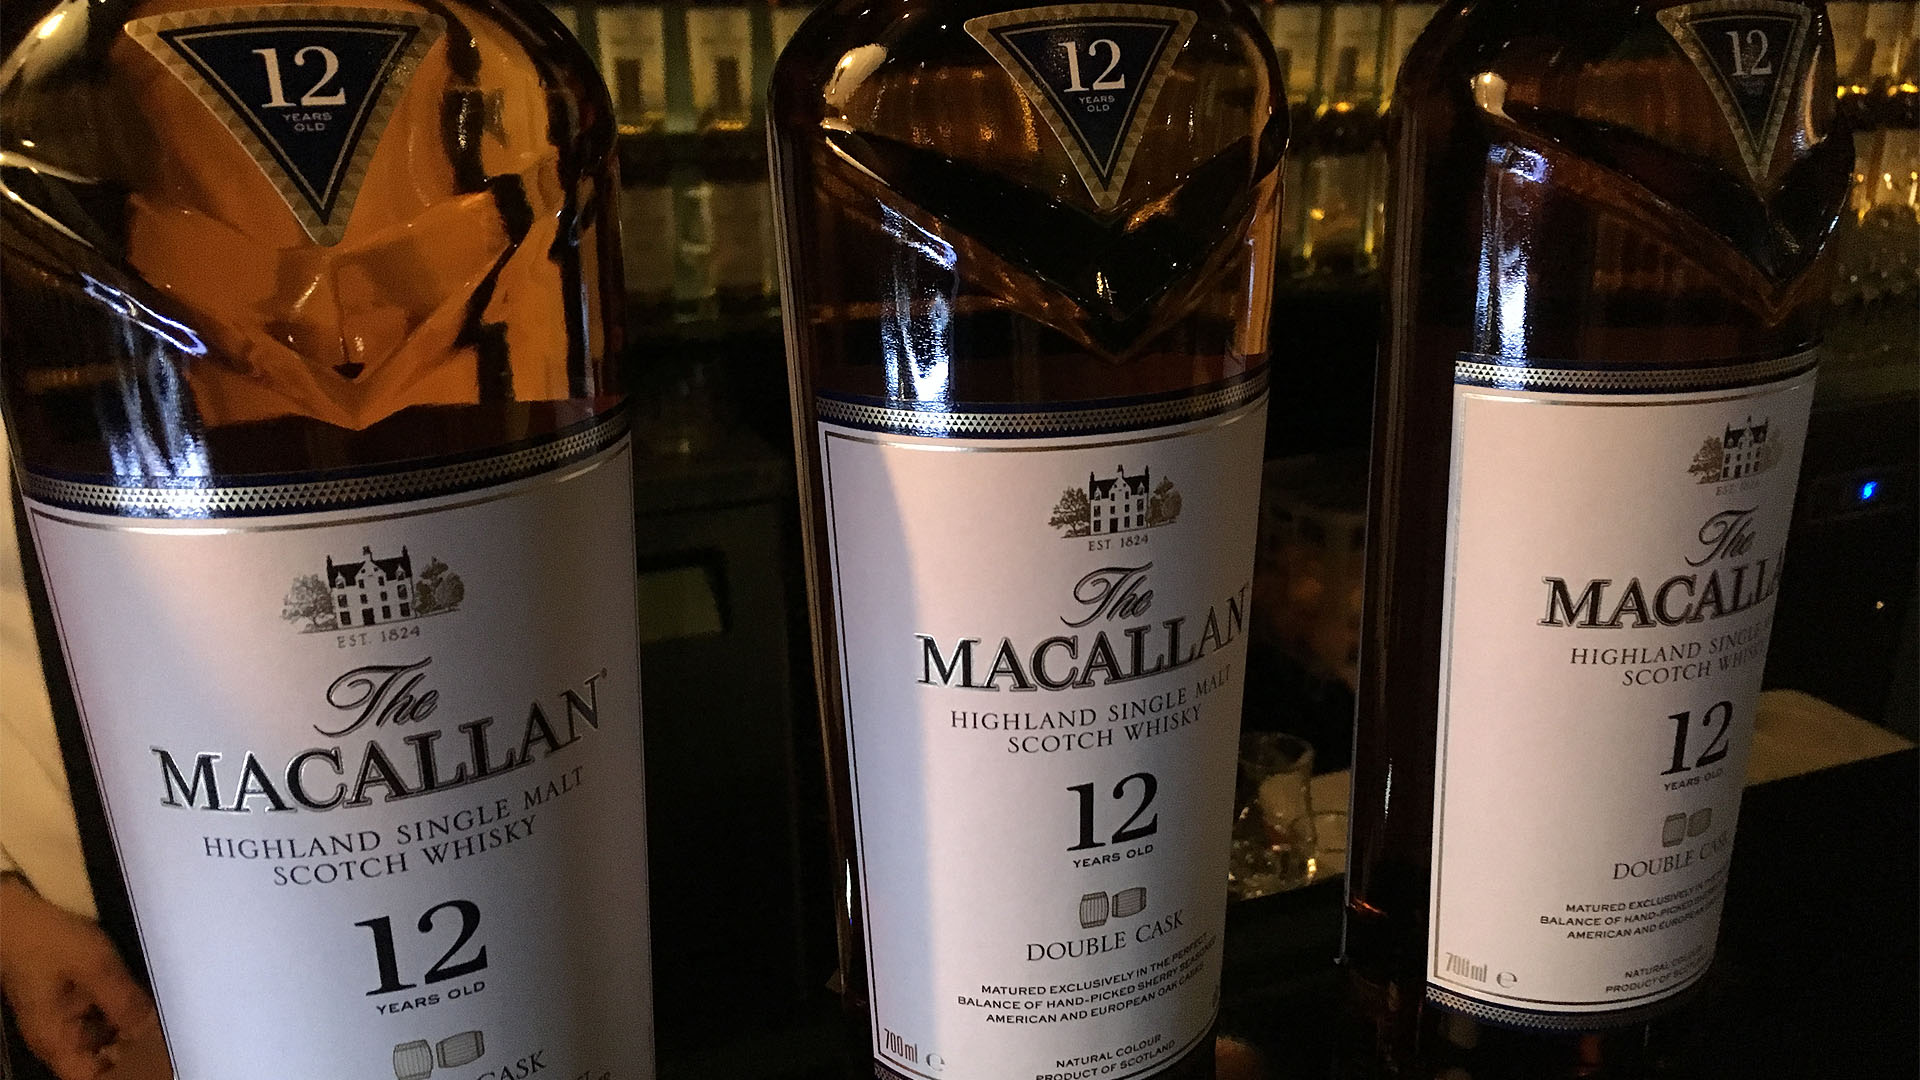 Celebrating The Macallan's Whisky Making Heritage With The Edition No. 4 photo